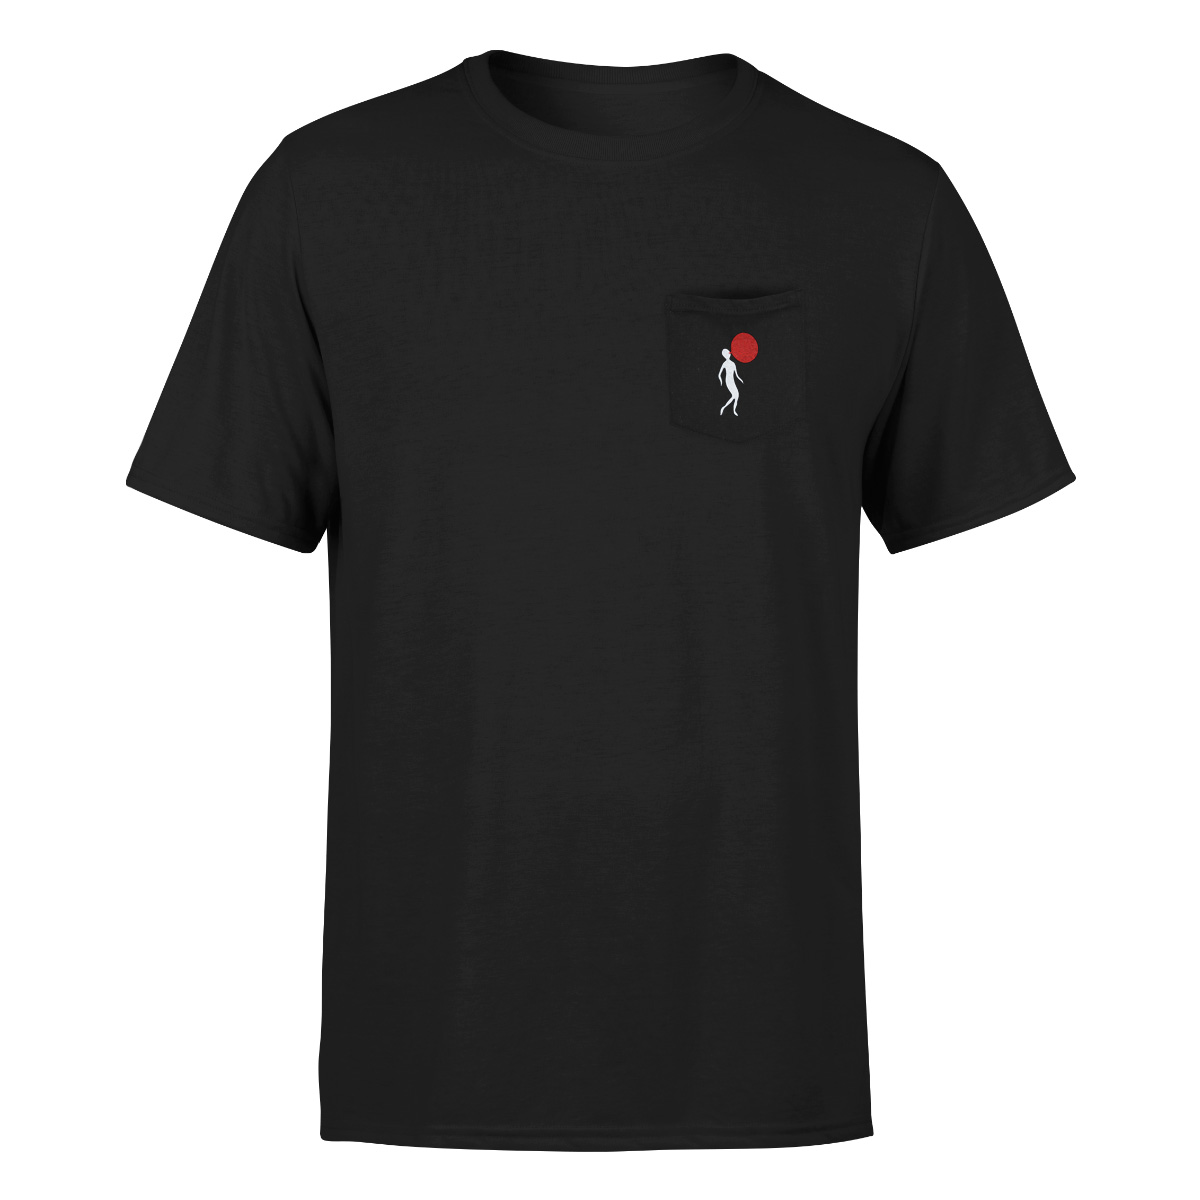 Lucy Dacus Historian US Spring 2018 Tour T-Shirt